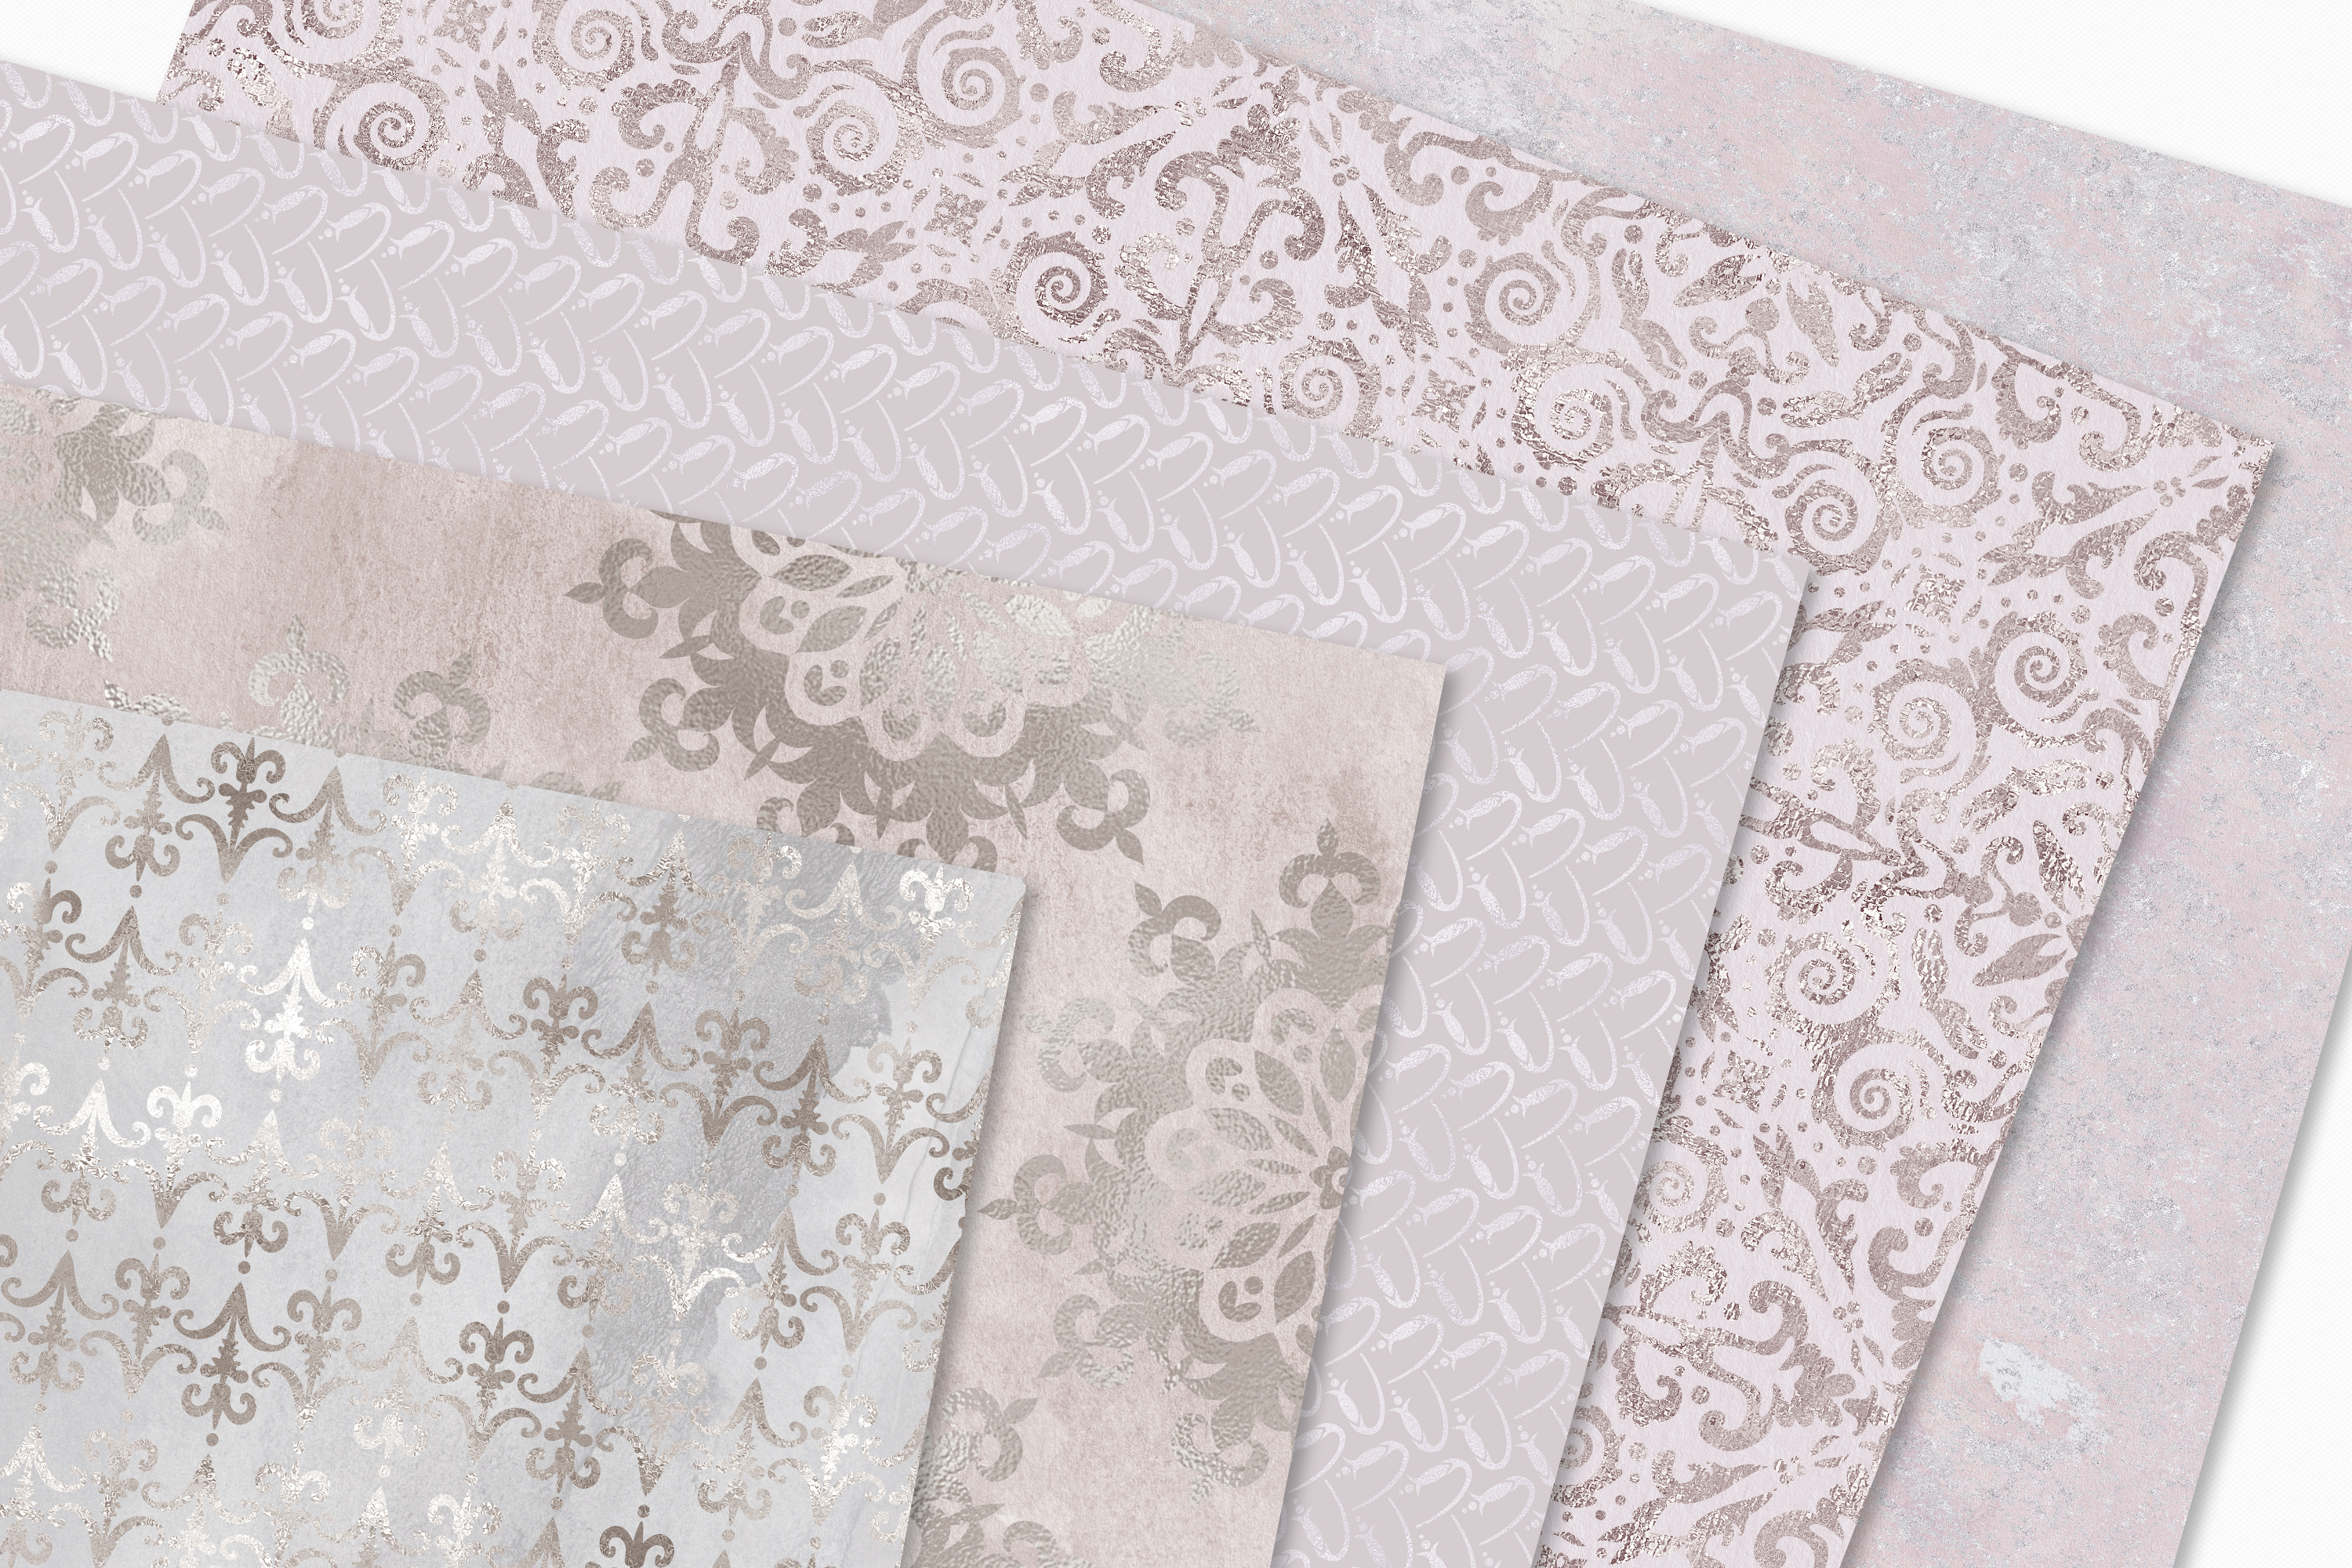 20 Seamless Shabby Chic Digital Papers example image 5